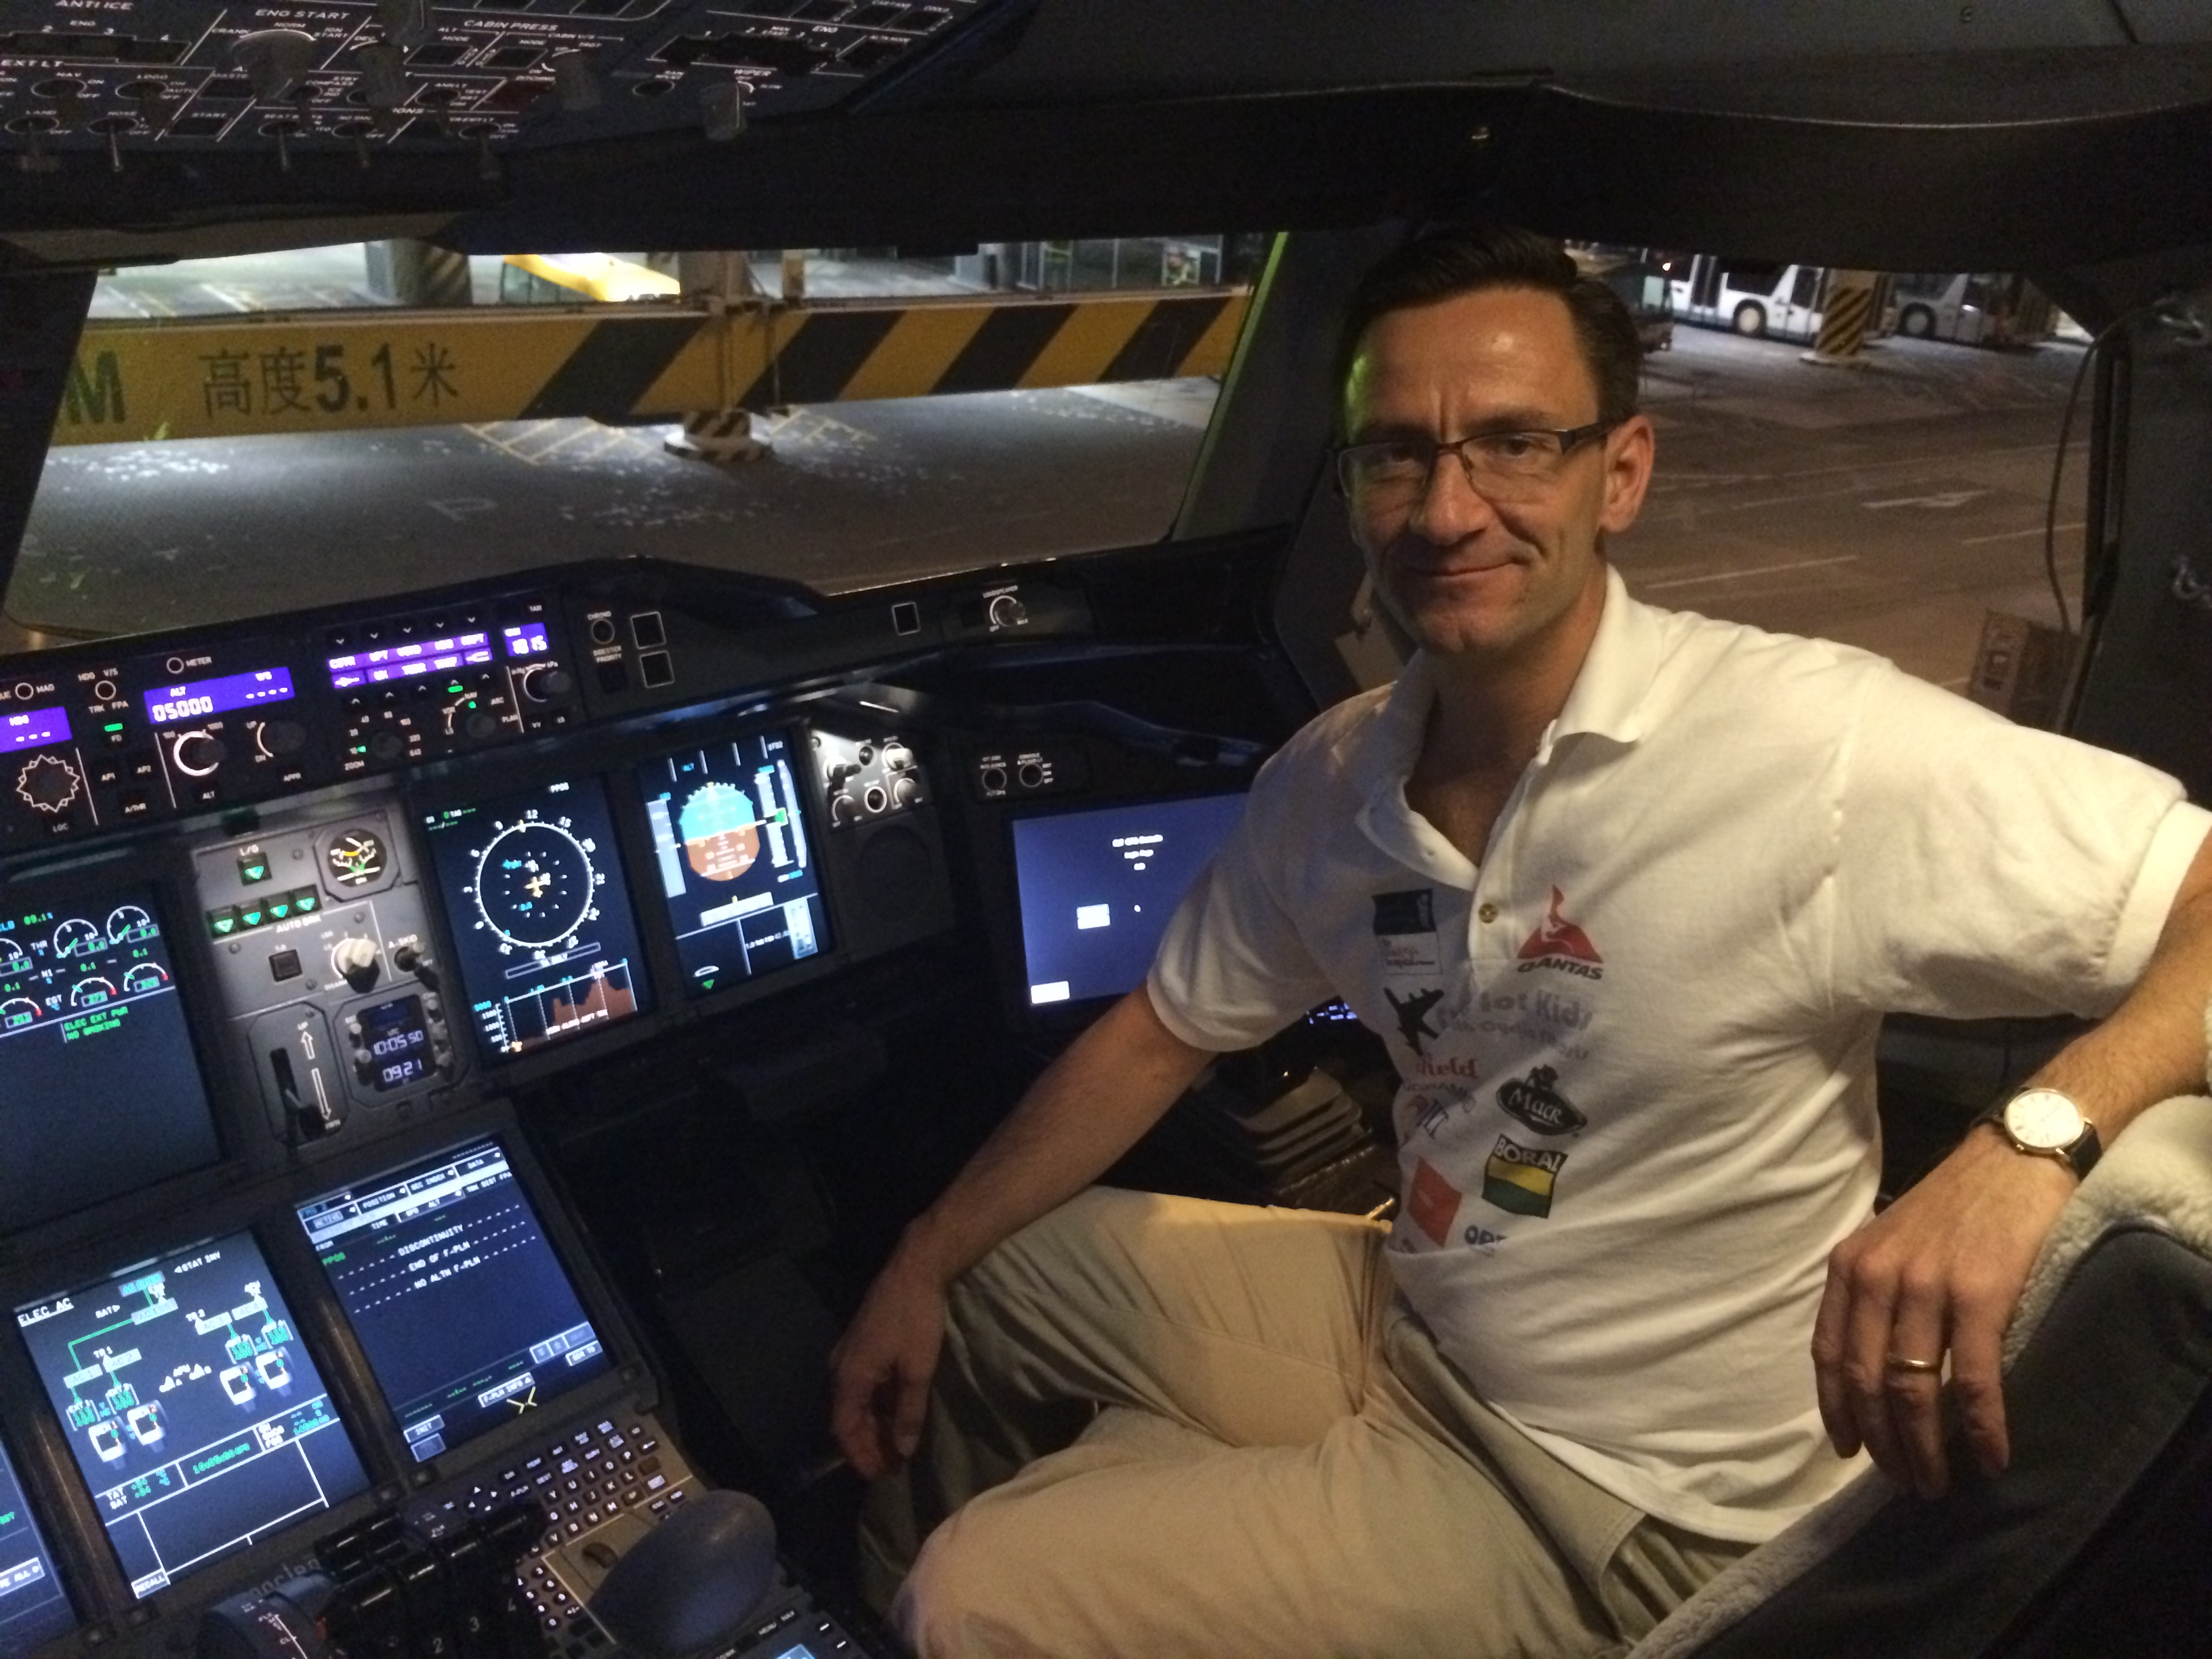 This undated photo shows Matthias Fuchs in the cockpit of an Airbus A380 at Hong Kong International Airport.